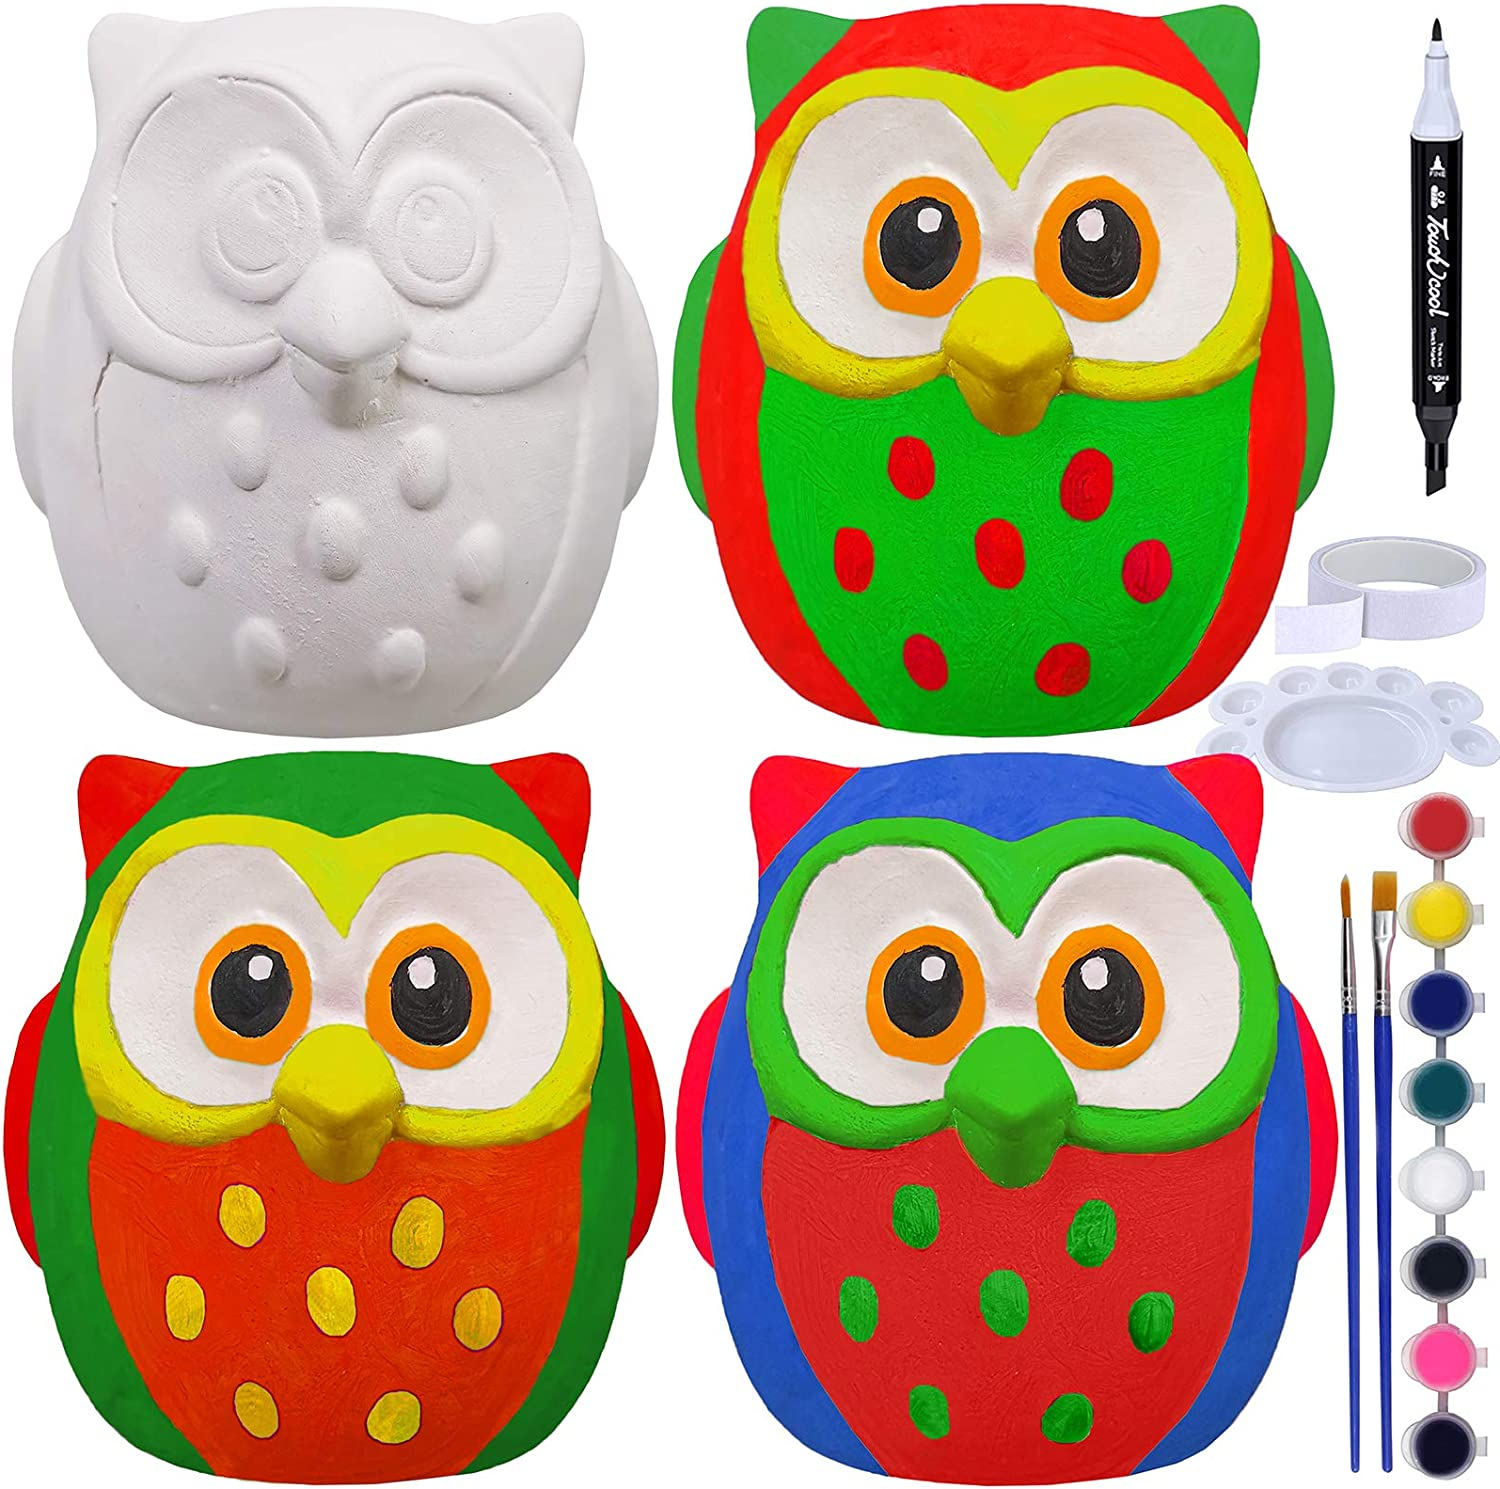 4 Sets DIY Ceramic Owls Figurines Paint Craft Kit Unpainted Bisque Ceramics PaintableOwls Ceramics Ready to Paint for Kids Christmas Winter Season Holiday at-Home Classroom DIY Craft Project